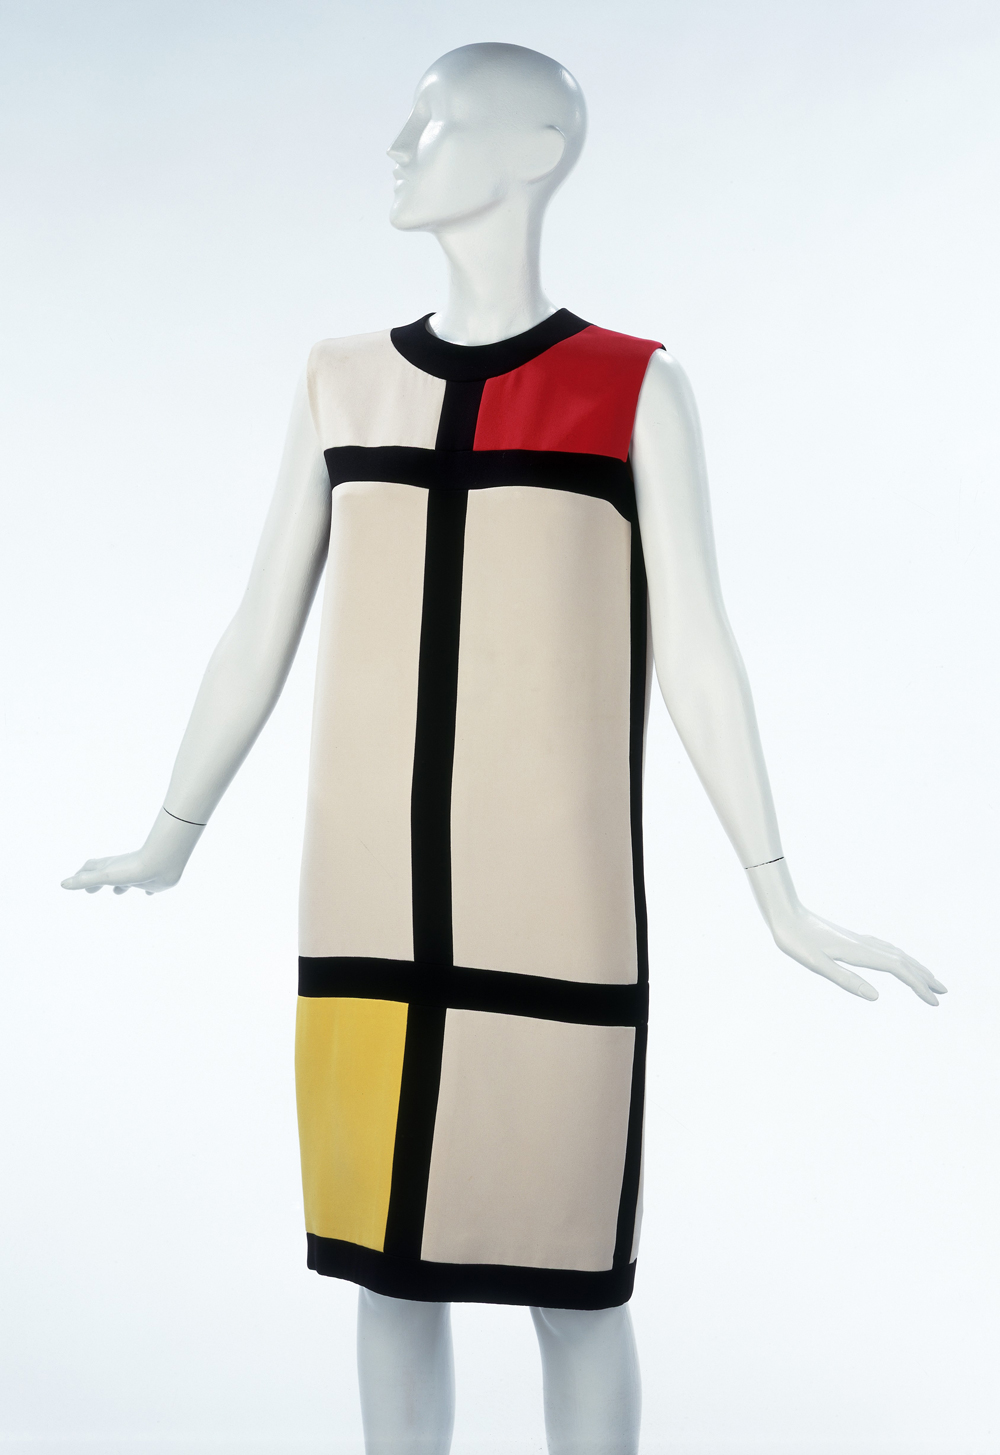 Mondrian Tail Dress Yves Saint Lau 1965 Museum No T 369 1974